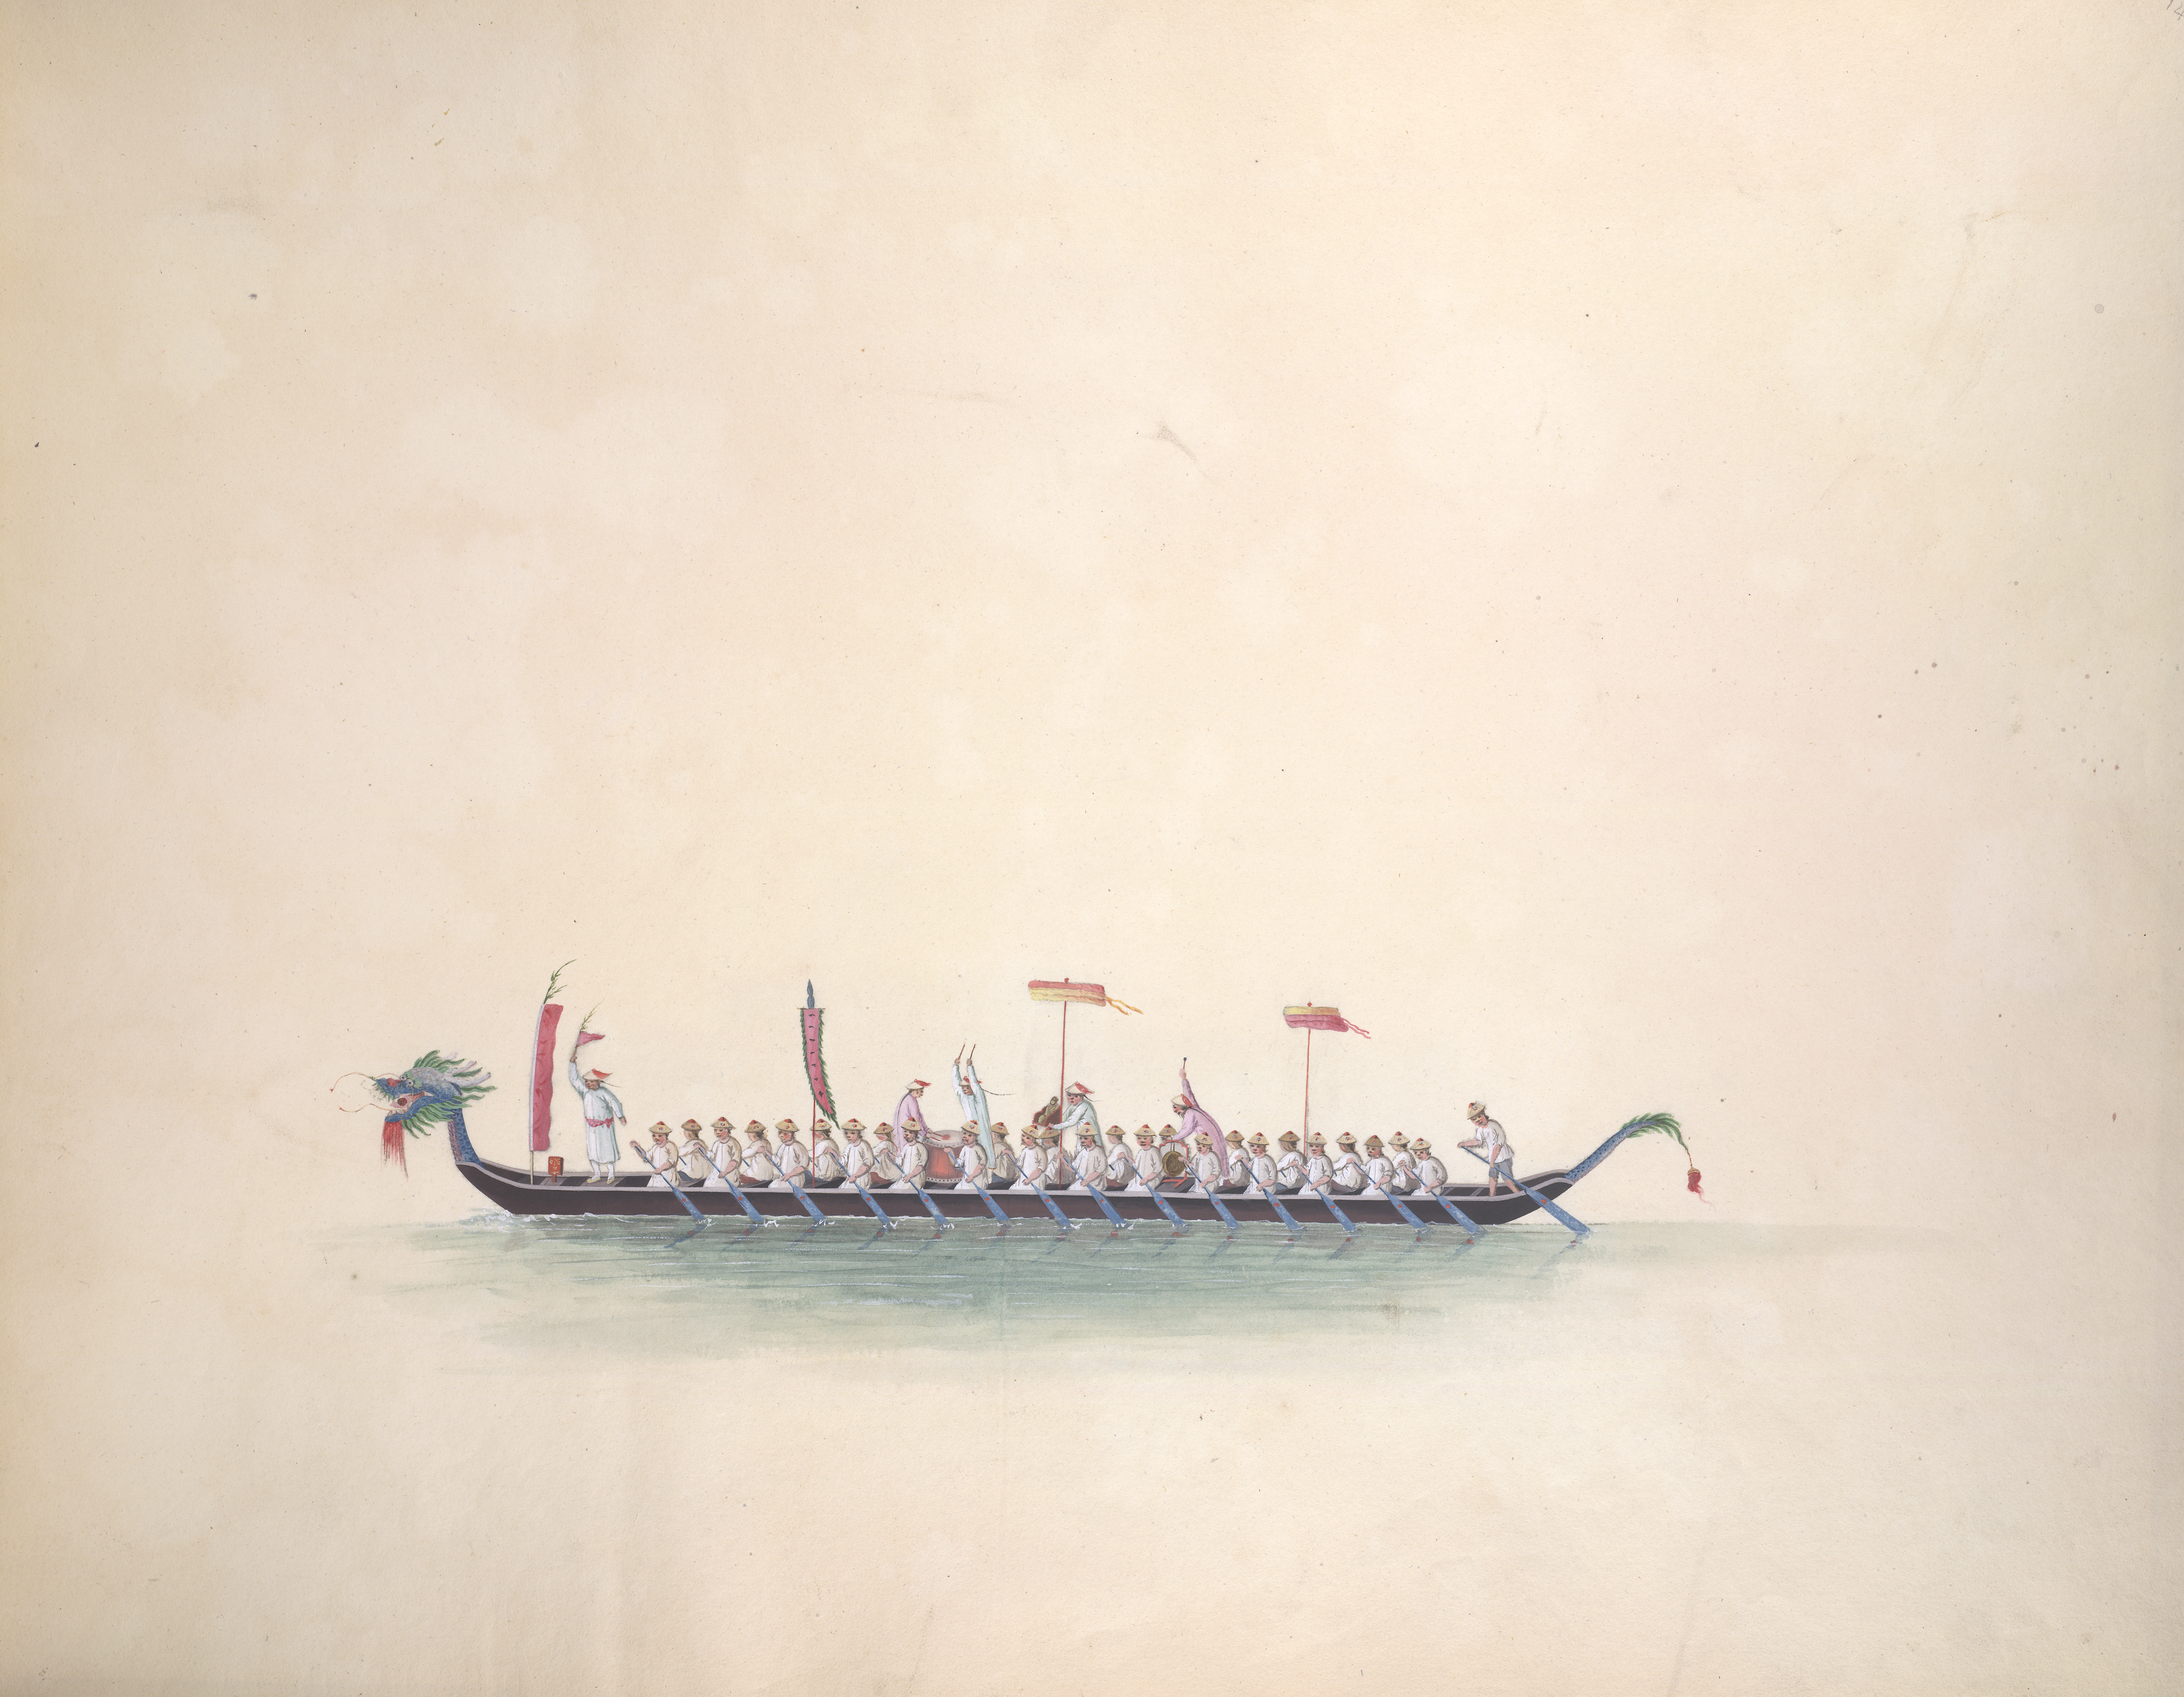 'Lung Sheun. Literally Dragon or Snake boat. On a particular festival of the Chinese which falls on their fifth month, boats of this construction are used as Race boats'. Inscribed 'Dragon boat of the festival on the 5th of the 5th month'. Opaque watercolour. ChinaCanton style. Originally publishedproduced in 1800 - 1805.